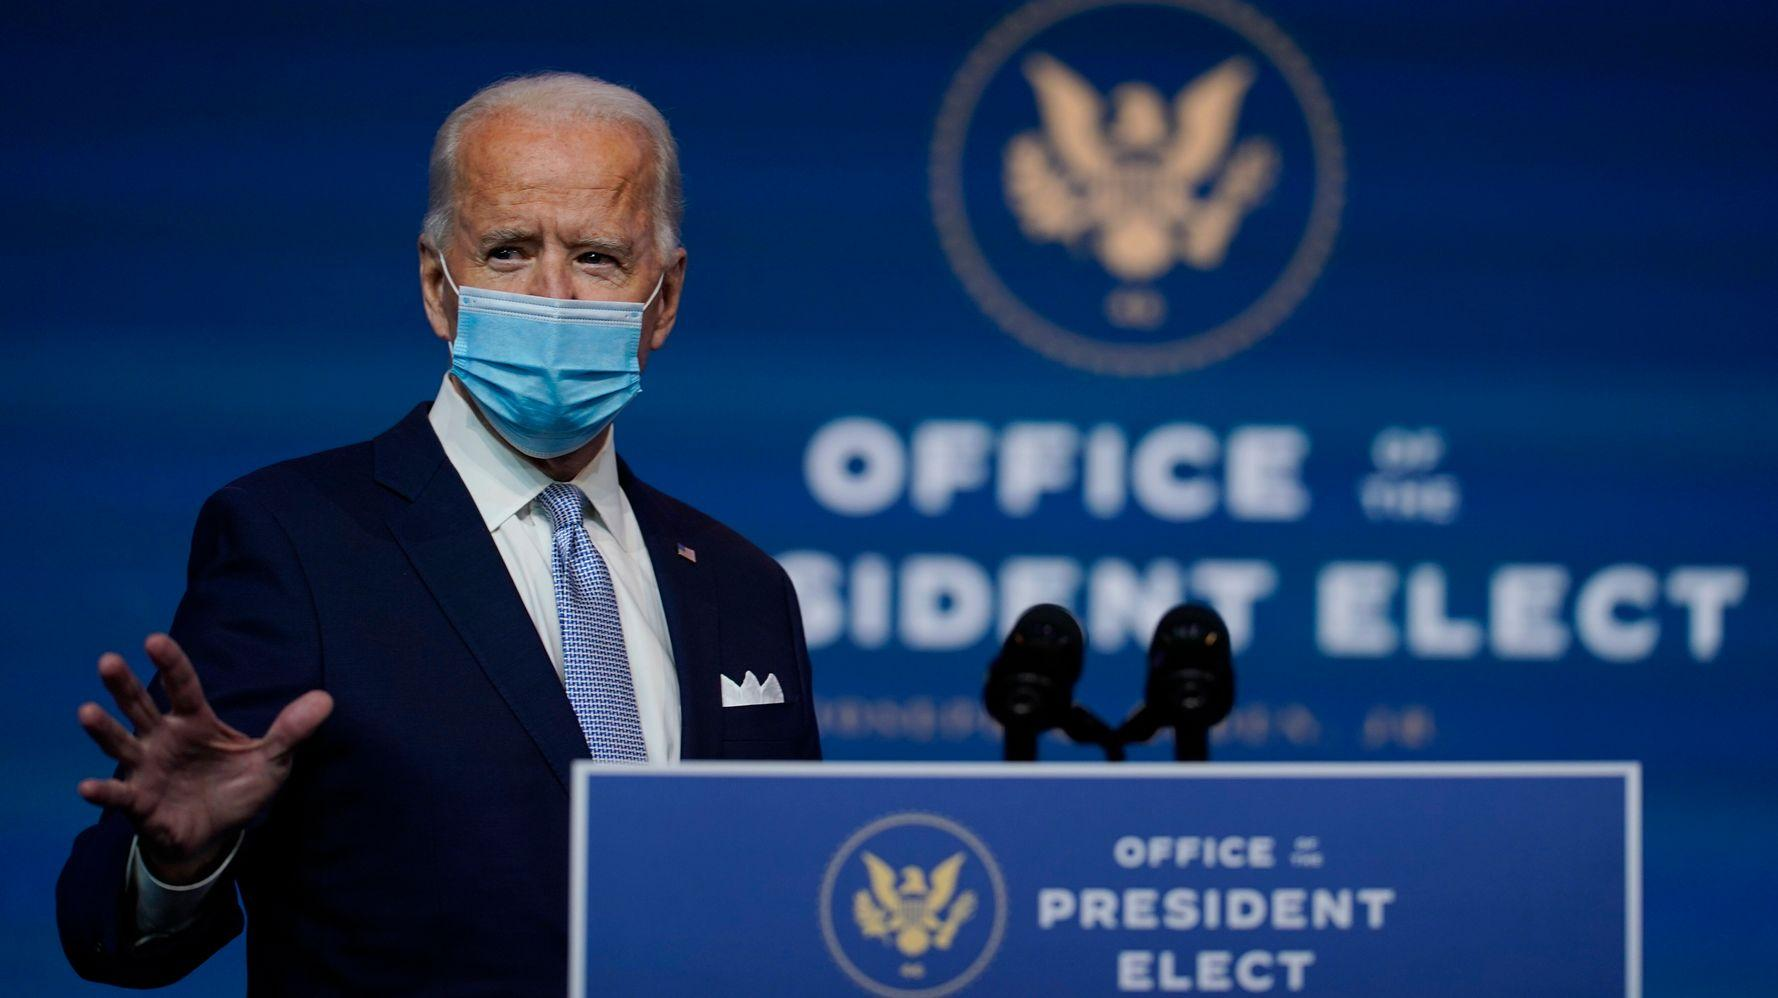 Biden's Daily Intel Briefings Remind Us That Trump Hardly Bothered With Them